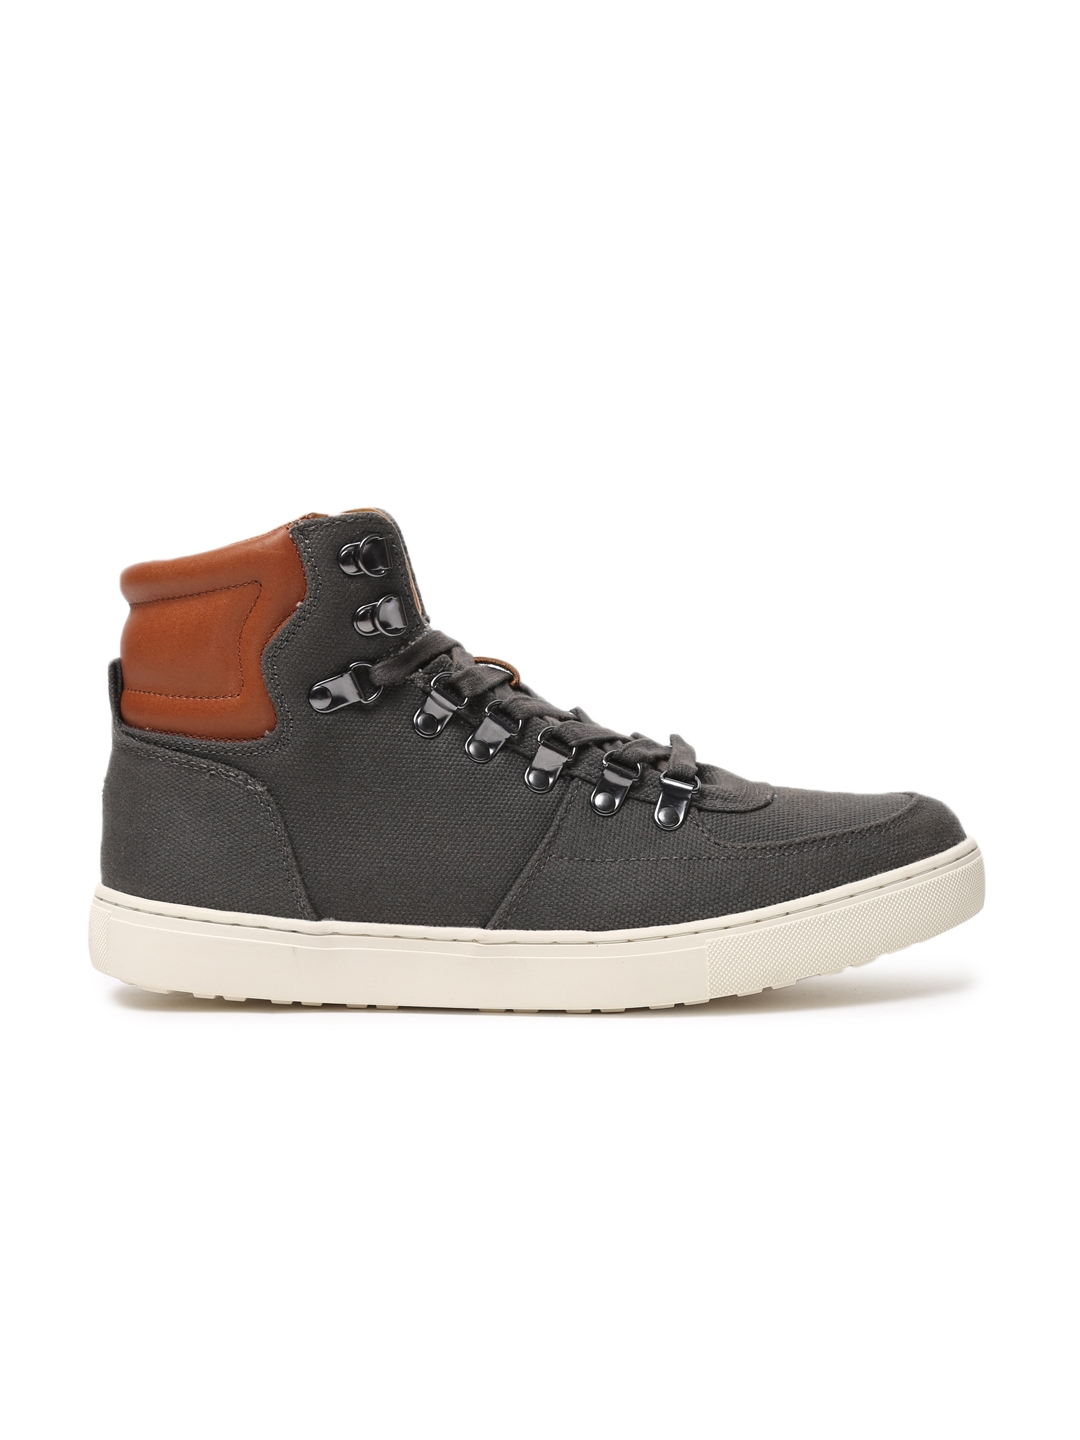 7353642b2d13 Buy Tommy Hilfiger Men Grey Solid Canvas High Top Sneakers - Casual ...